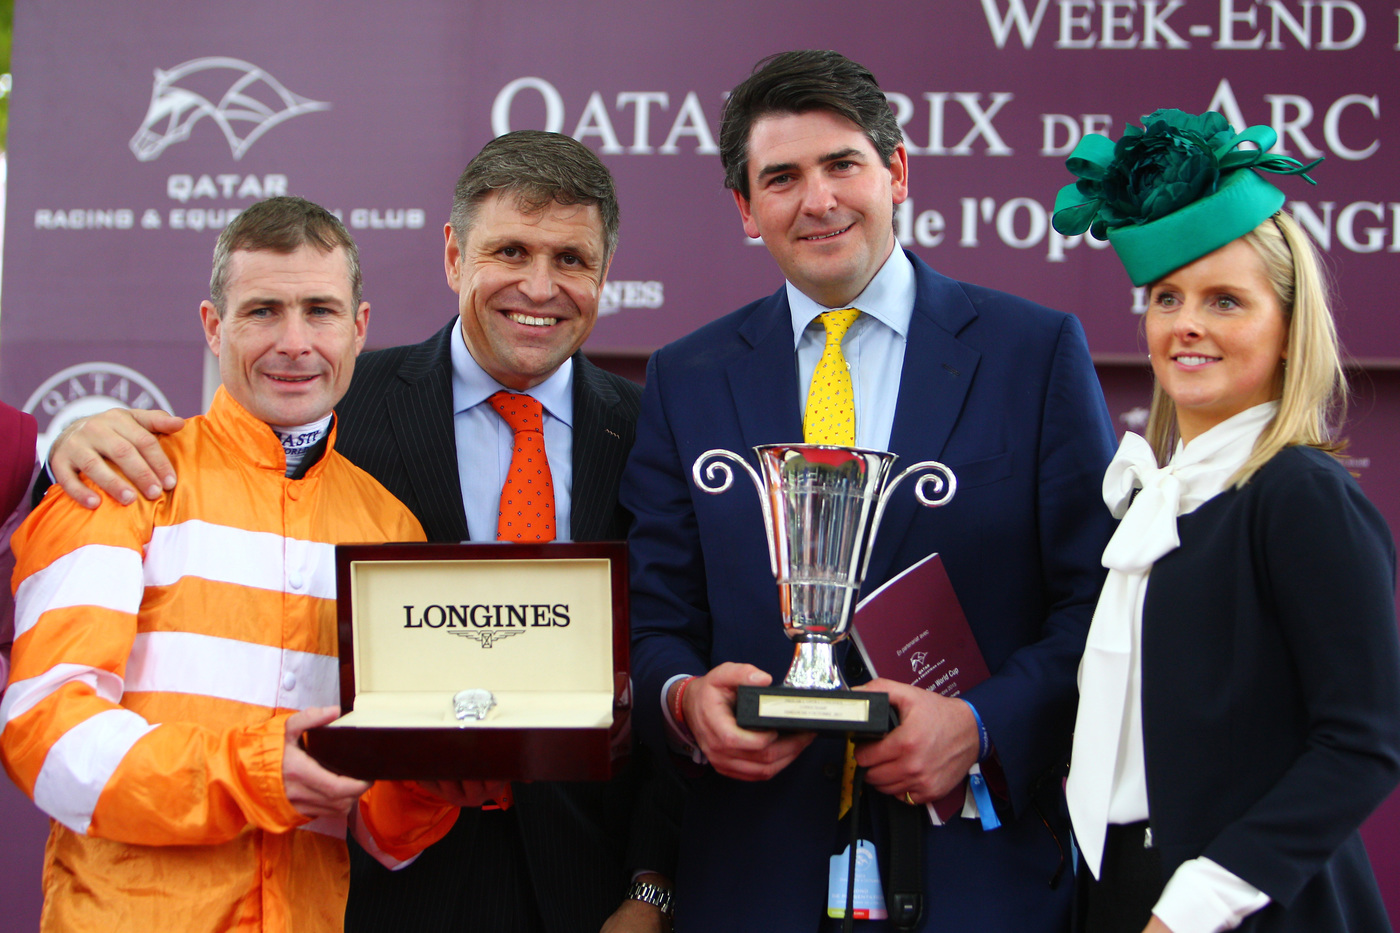 Longines Flat Racing Event: Qatar Prix de l'Arc de Triomphe : a thrilling race day timed by Longines  2